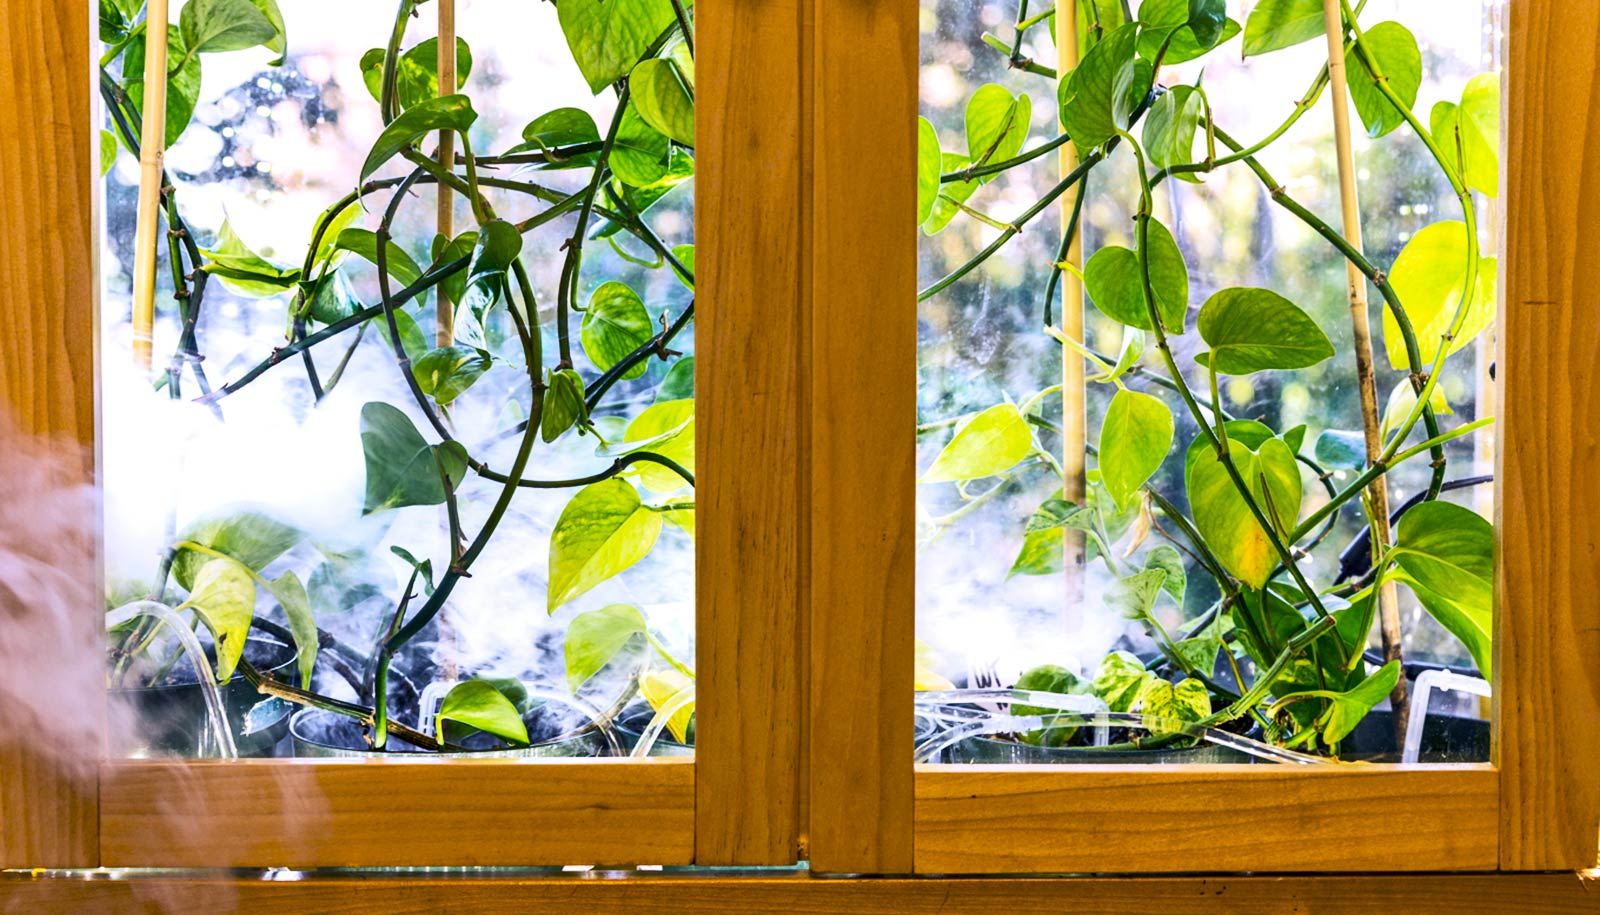 GM houseplant sucks cancer-linked chemicals from the air